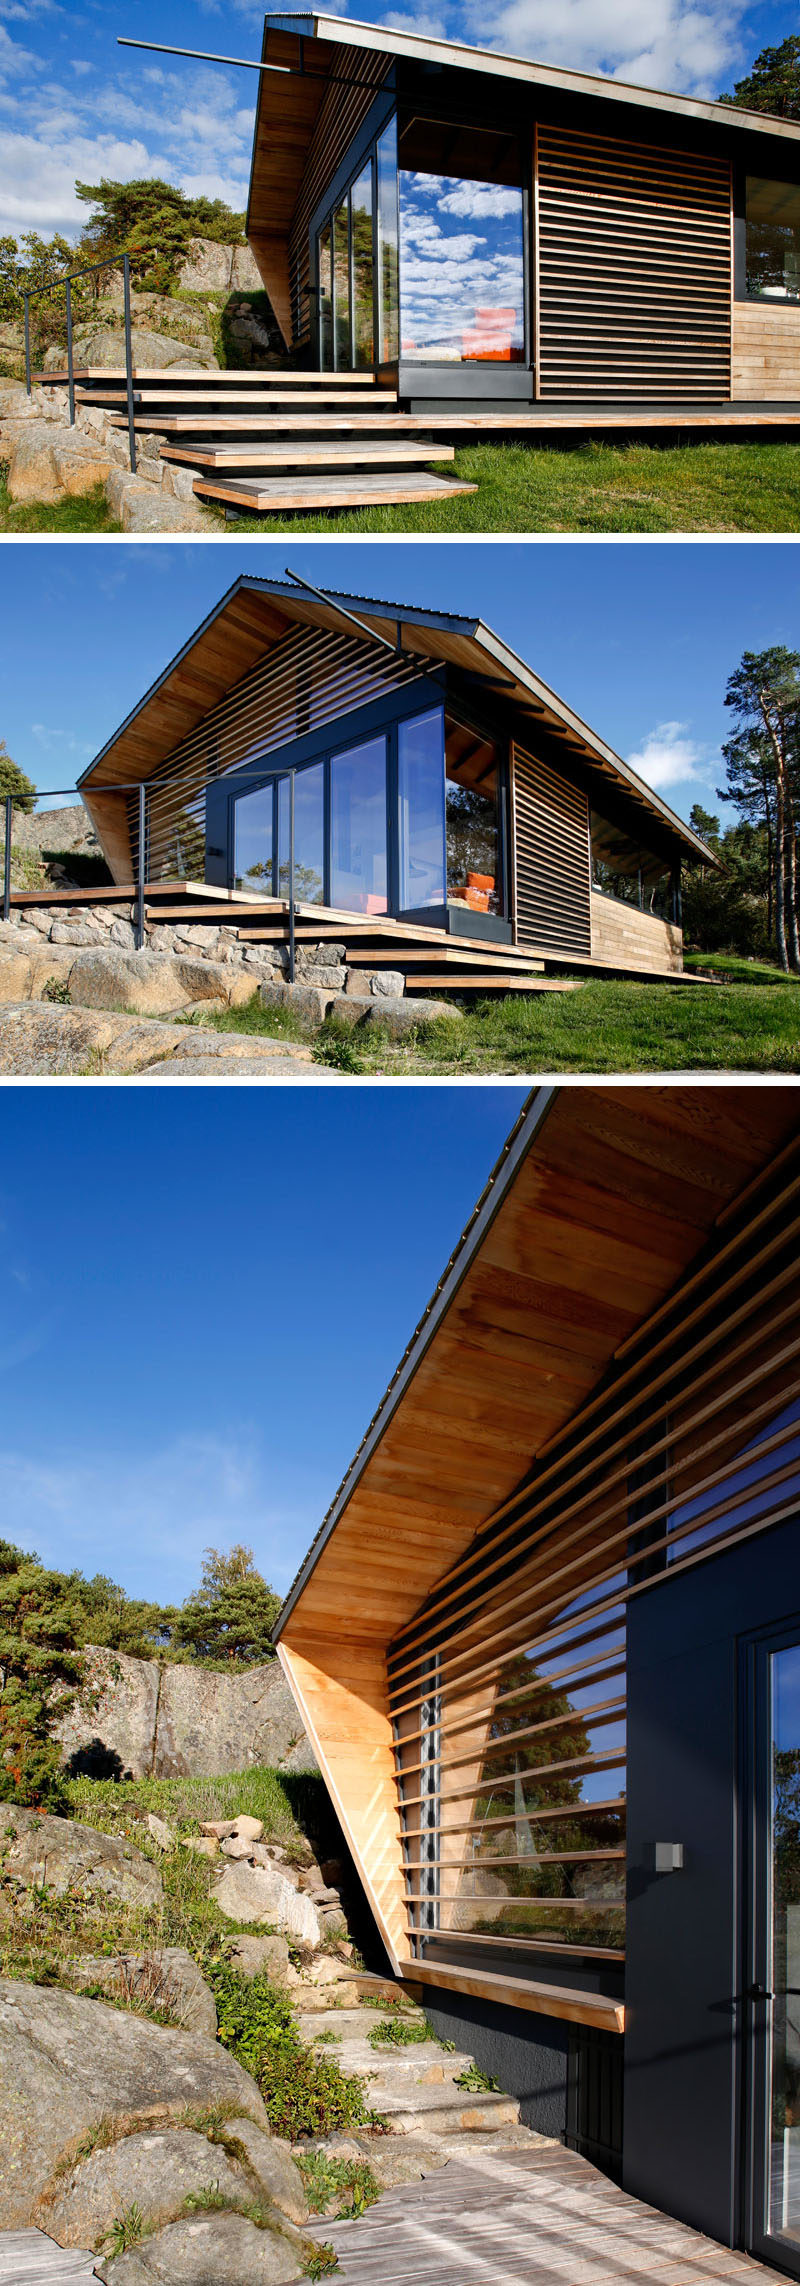 This modern cabin is clad with cedar timber, with some of the wood partially covering the windows, allowing sunlight to filter through to the interior. #ModernCabin #Architecture